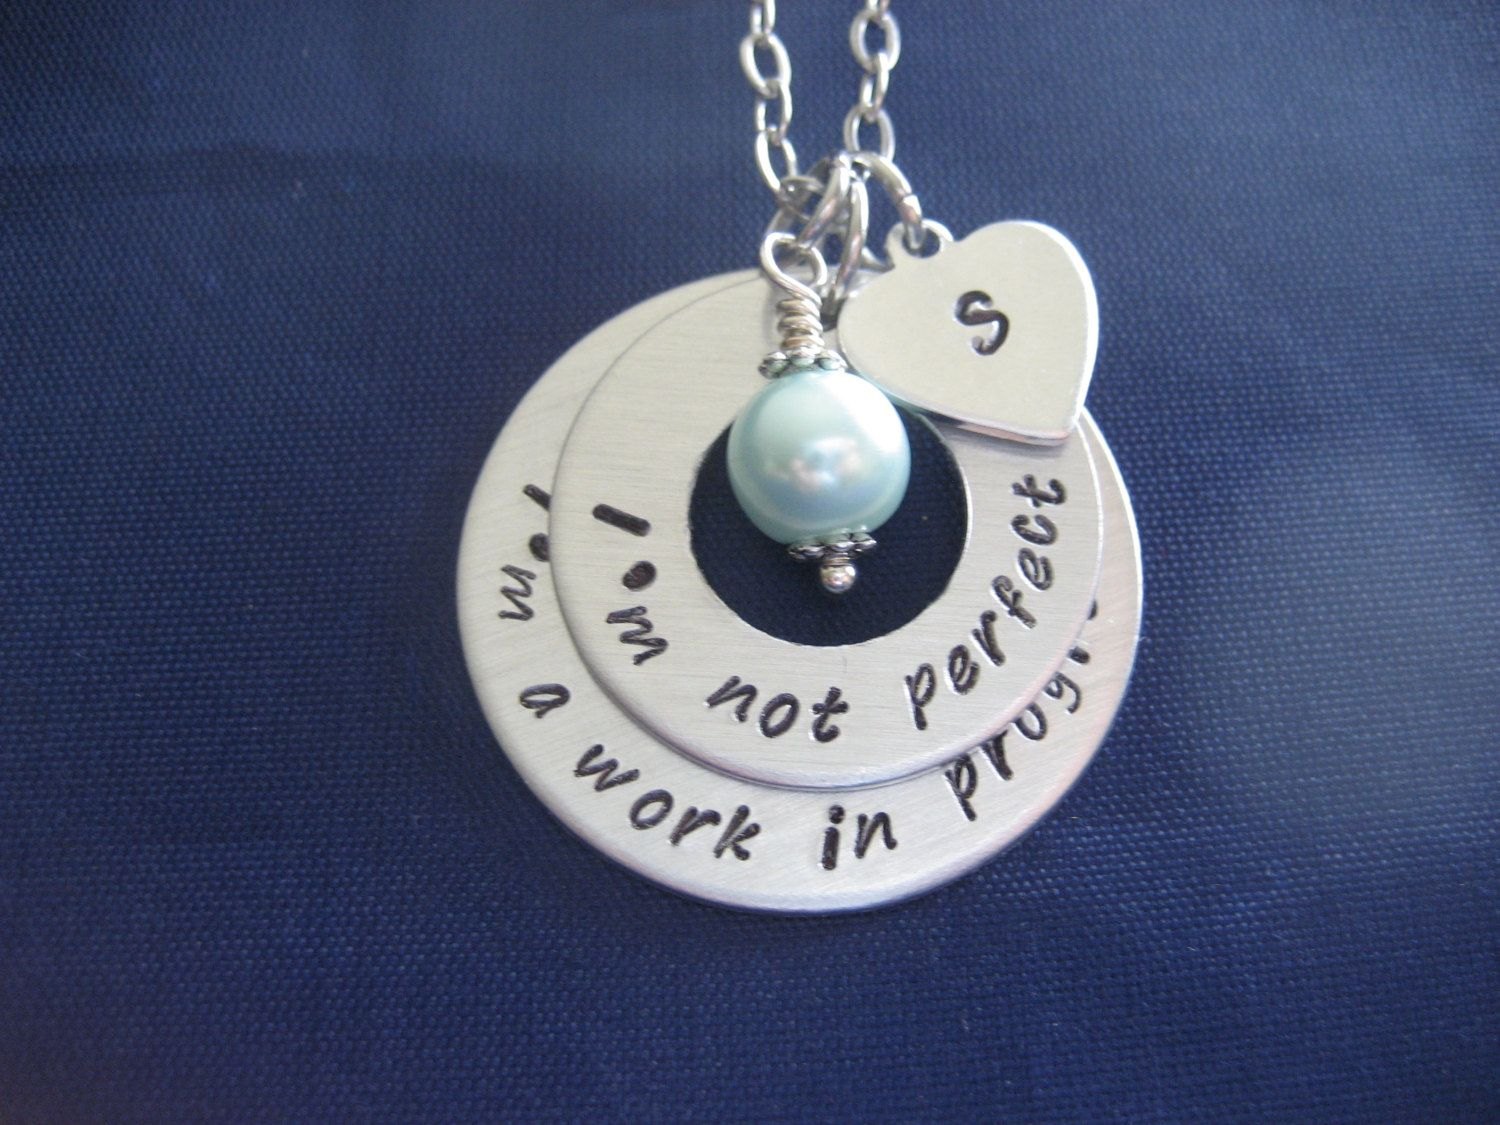 I'm Not Perfect, I'm a Work in Progress Hand Stamped Stacked Washer Necklace - Personalized Initial Necklace by TheVerseWithin on Etsy